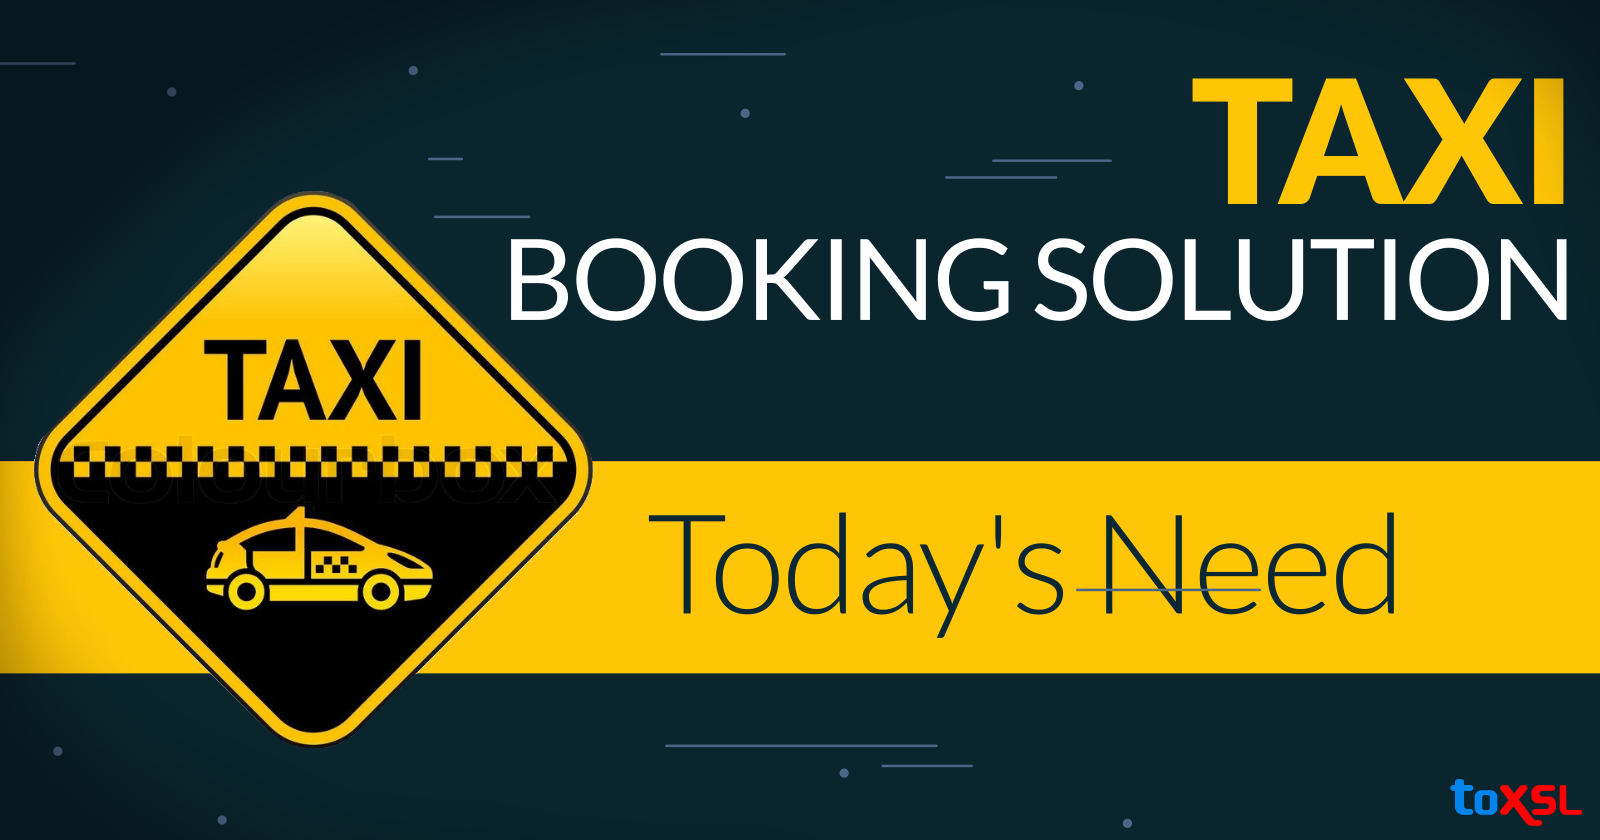 Taxi Booking Solution – Today's Need